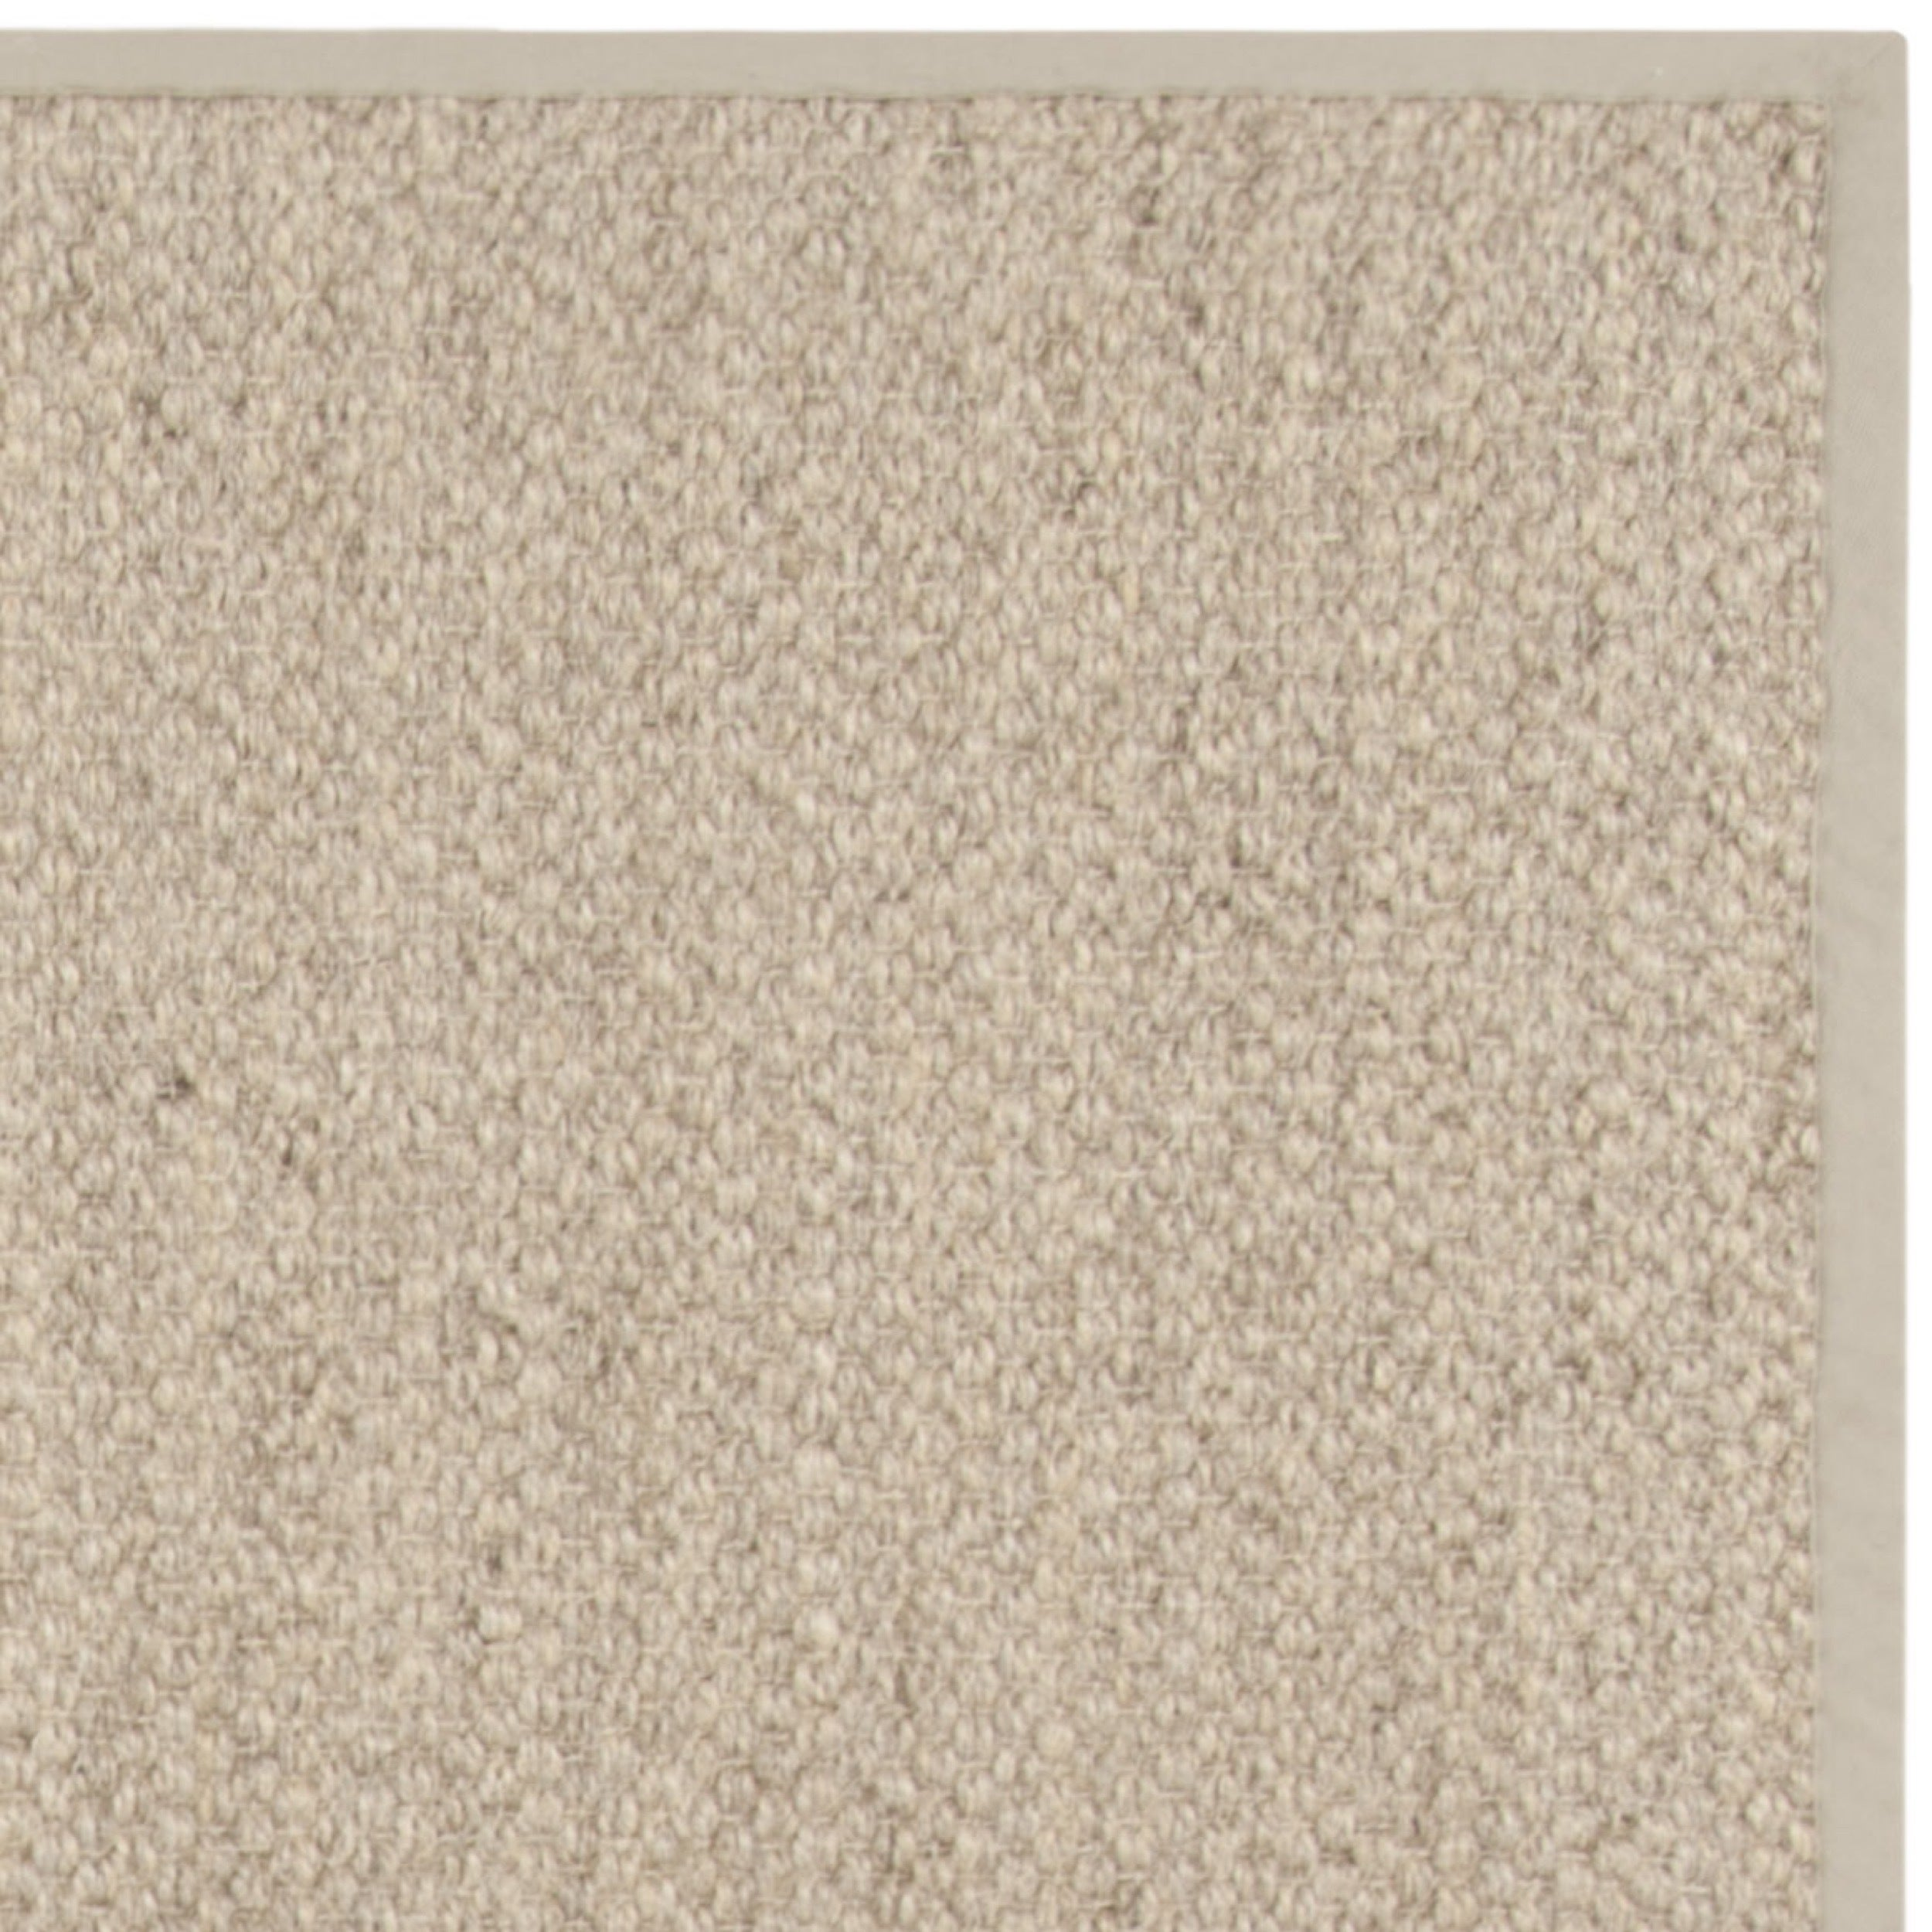 rugs rug indigo wellwood fiber bohemian safavieh spectrum soft natural collection